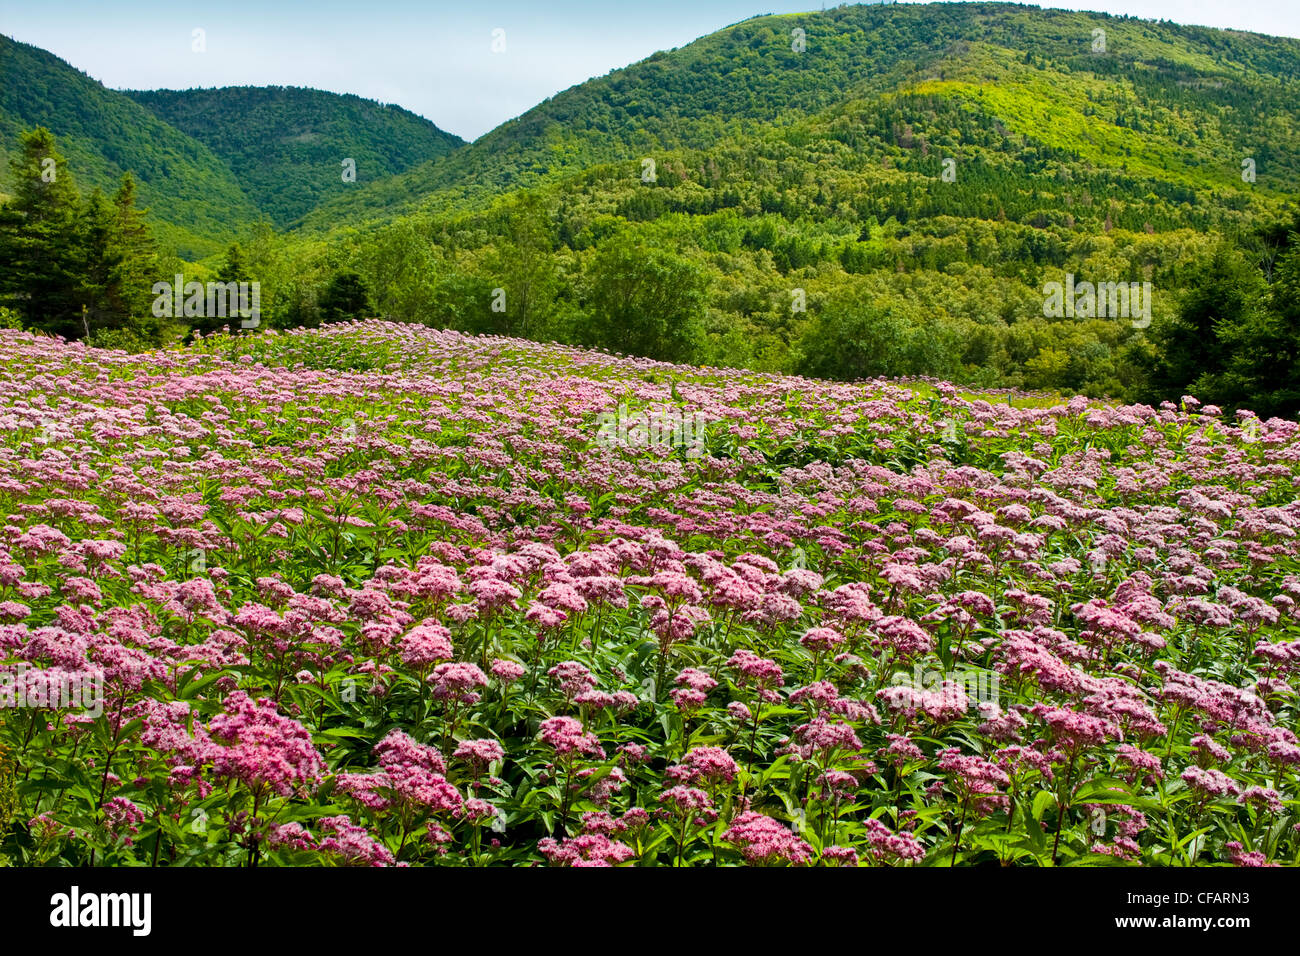 Field of Spotted Joe-pye Weed, (Eupatorium maculatum) at Cap Rouge in Highlands National Park, Cape Breton, Nova - Stock Image